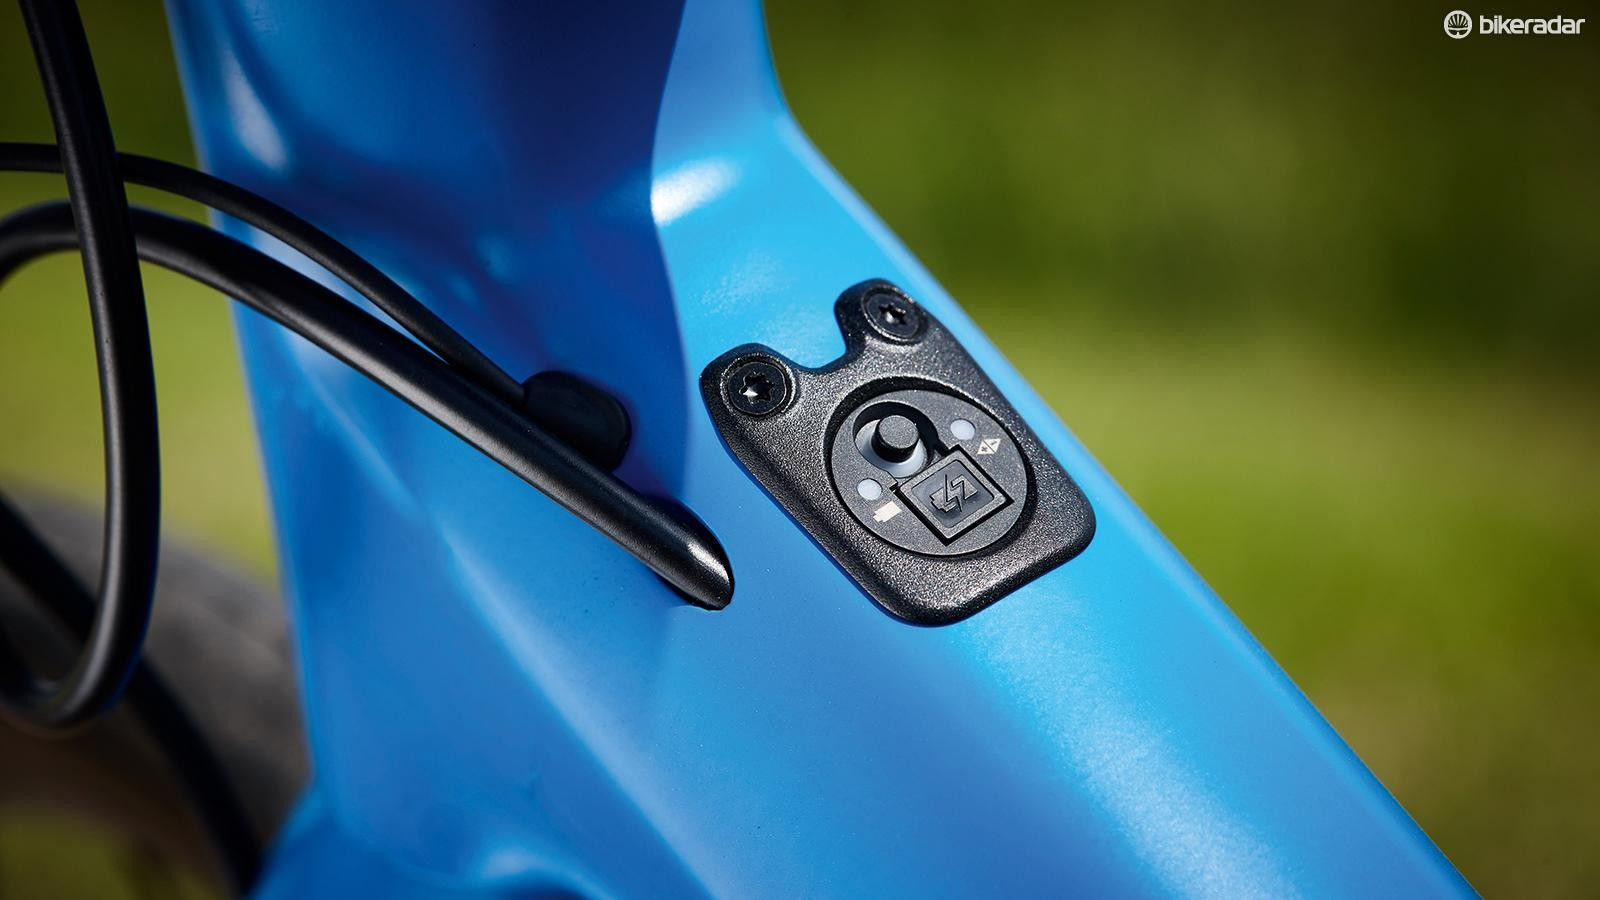 The BMC's frame has different inserts for Di2 wiring and mechanical shifting systems